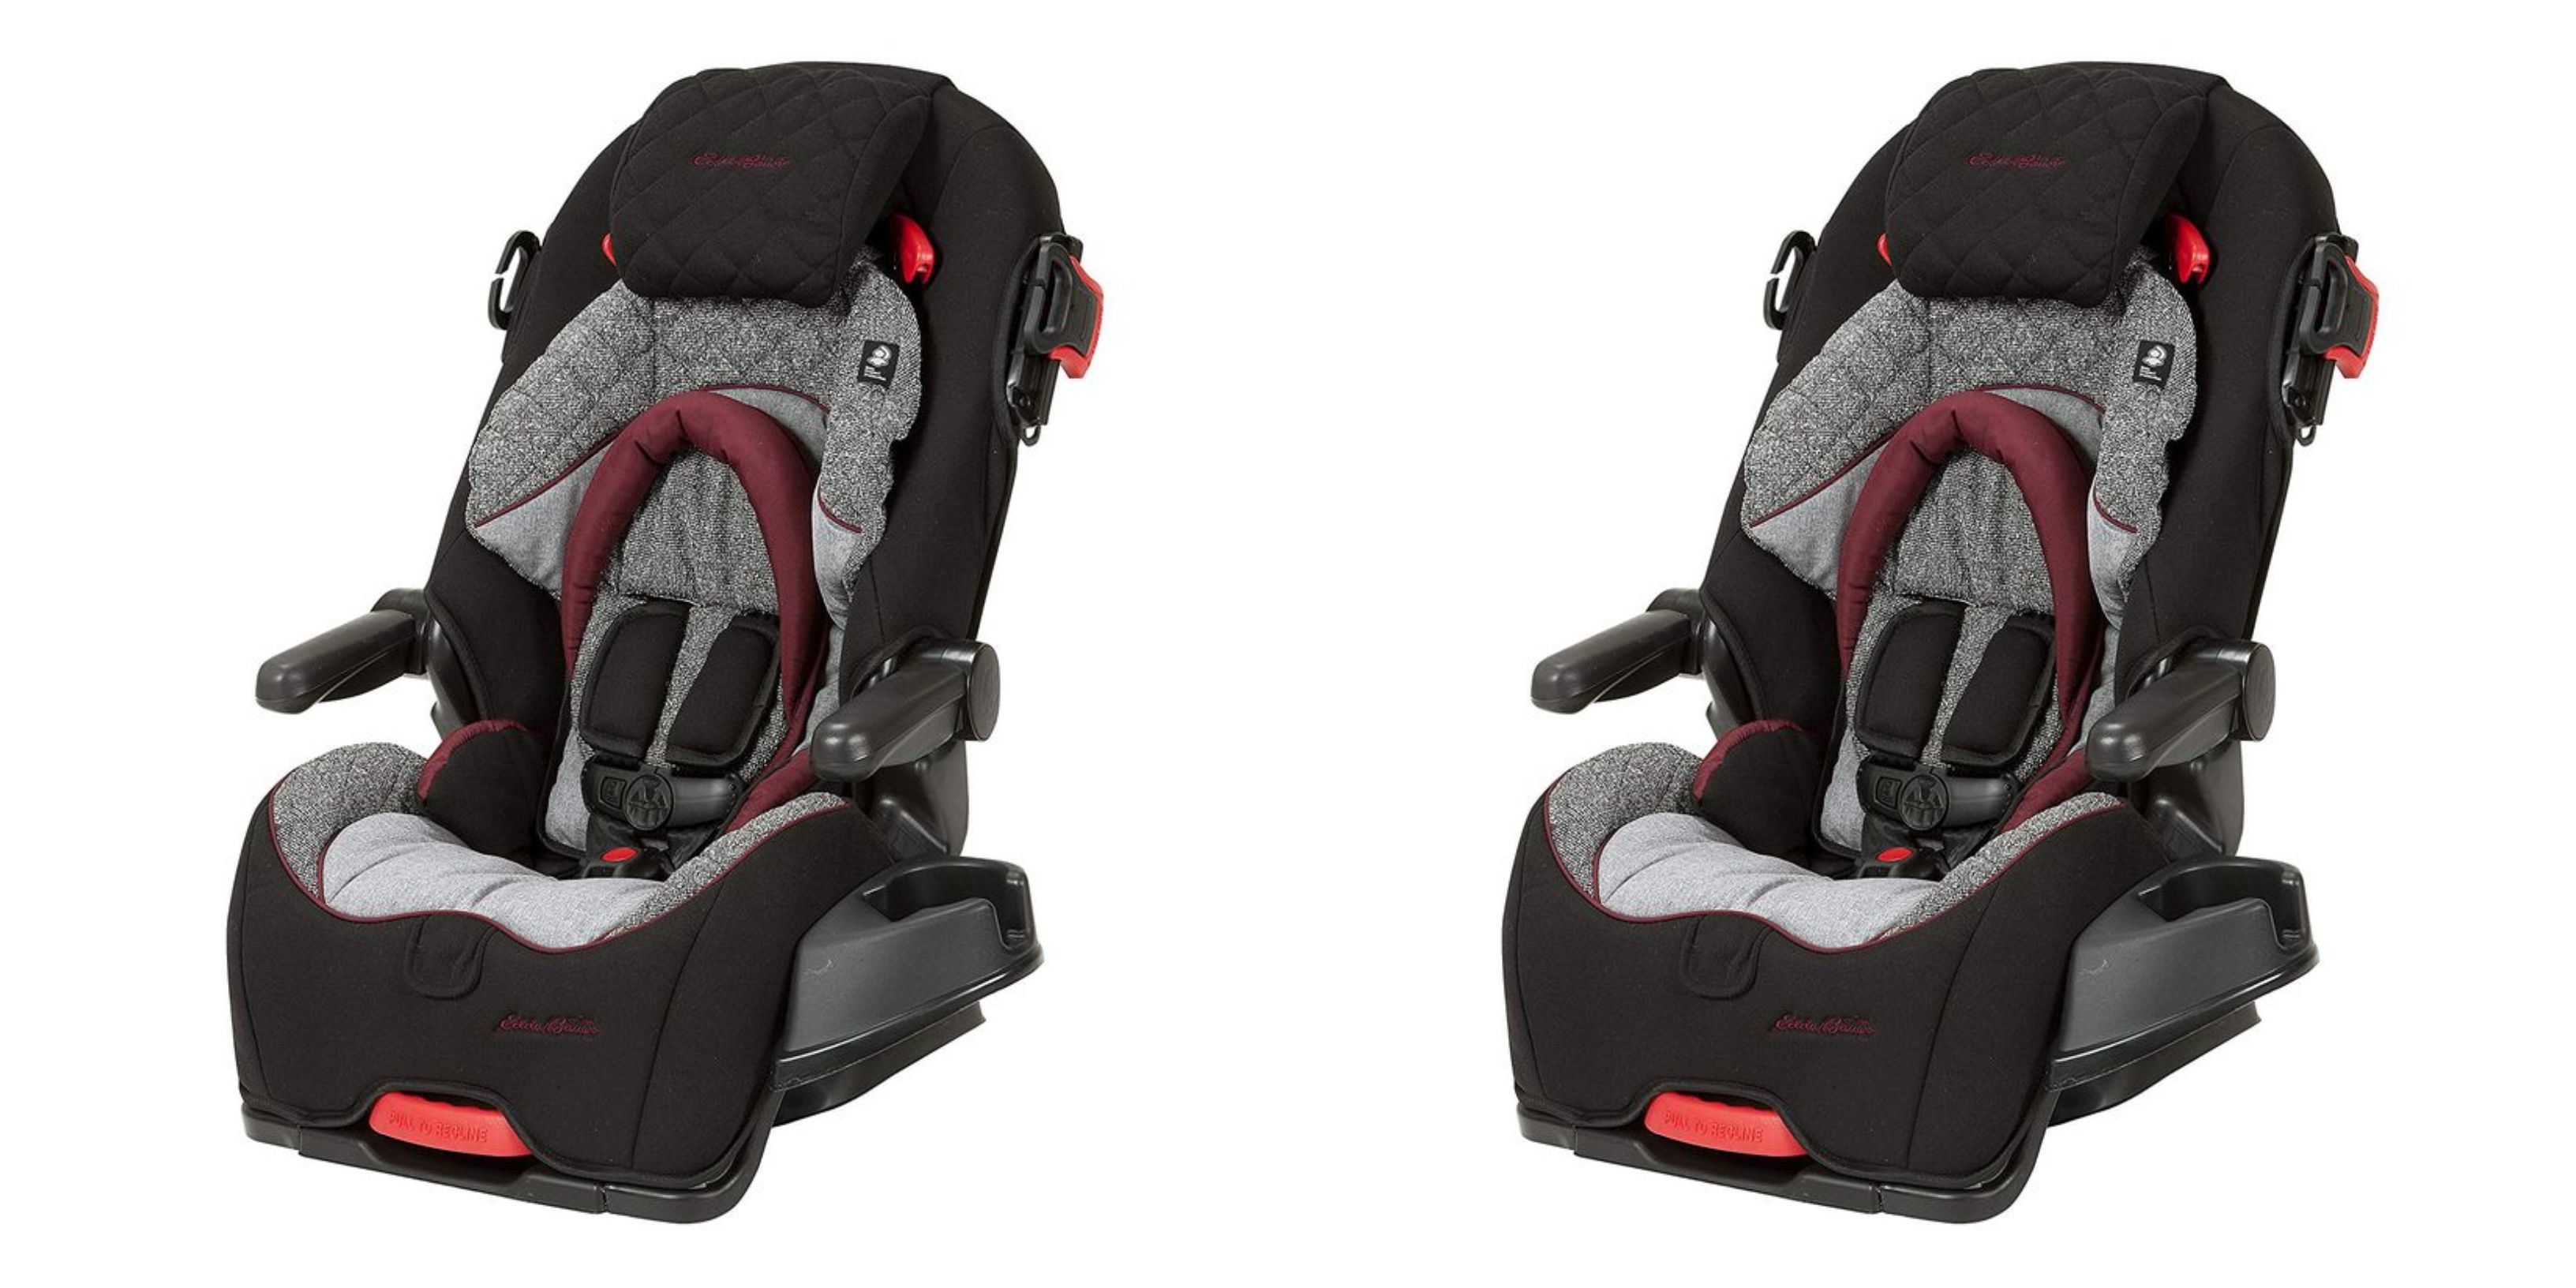 Eddie Bauer Deluxe 3 In 1 Car Seat Review